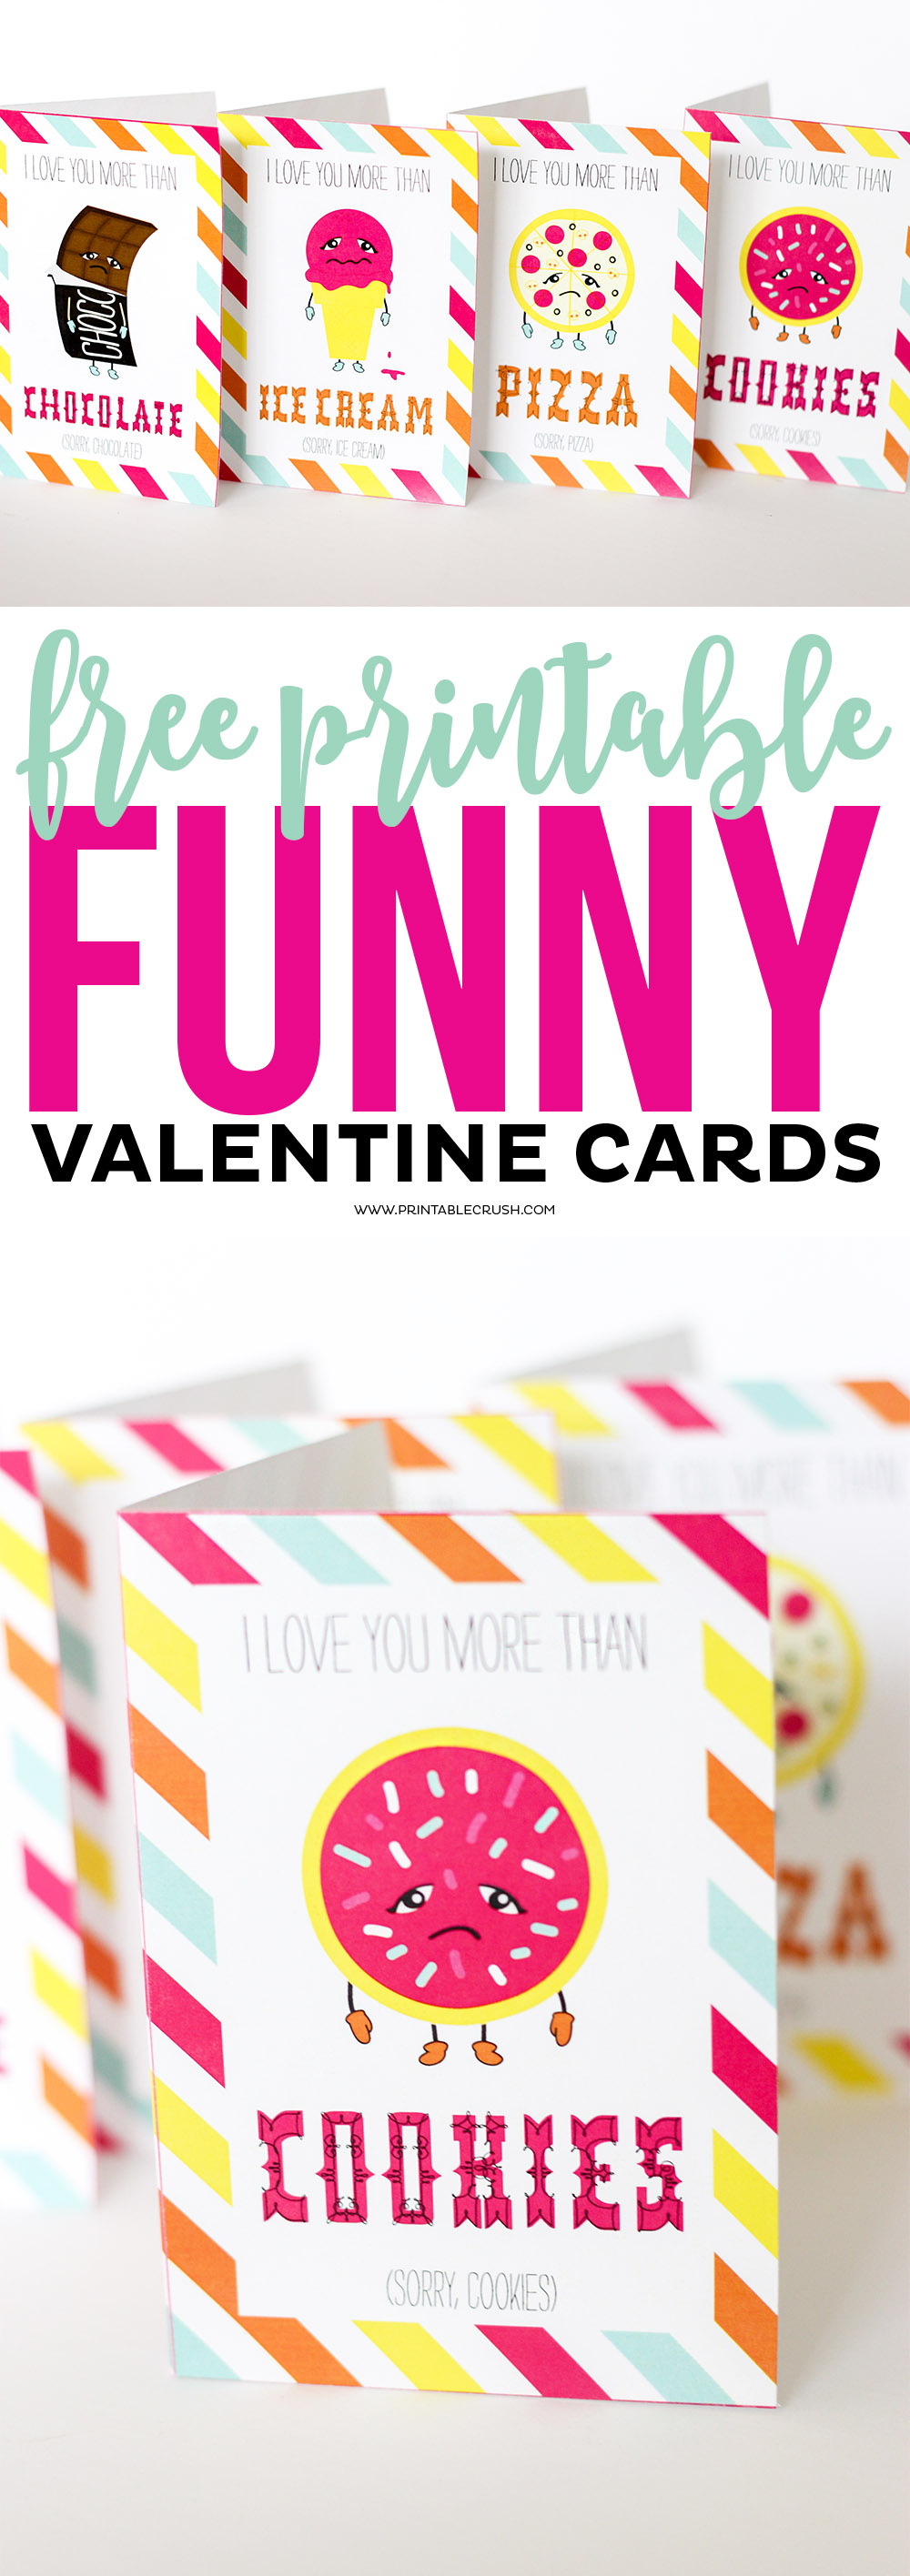 http://printablecrush.com/wp-content/uploads/2017/01/Free-Printable-Love-You-More-Than-Funny-Valentine-Cards-6-copy.jpg